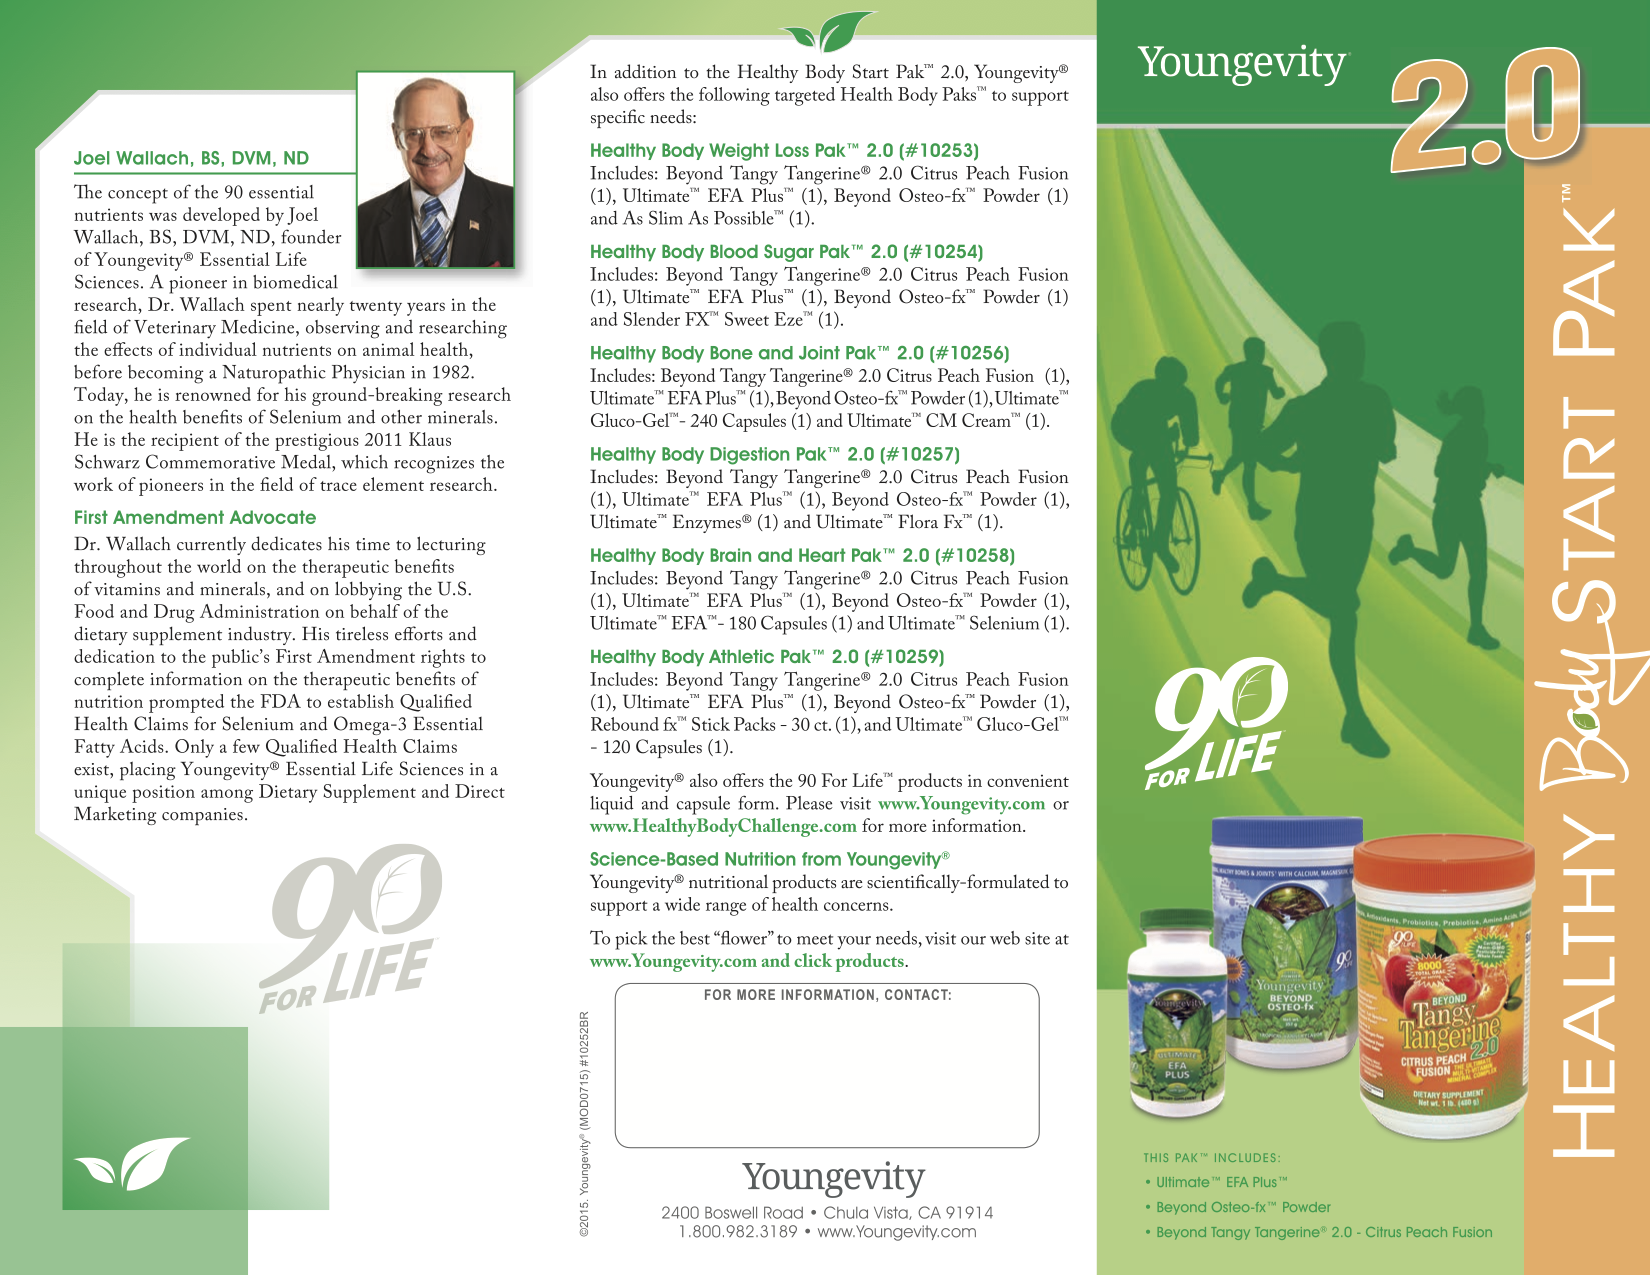 HBSP-2pt0_trifold-brochure4-0715-4review.png